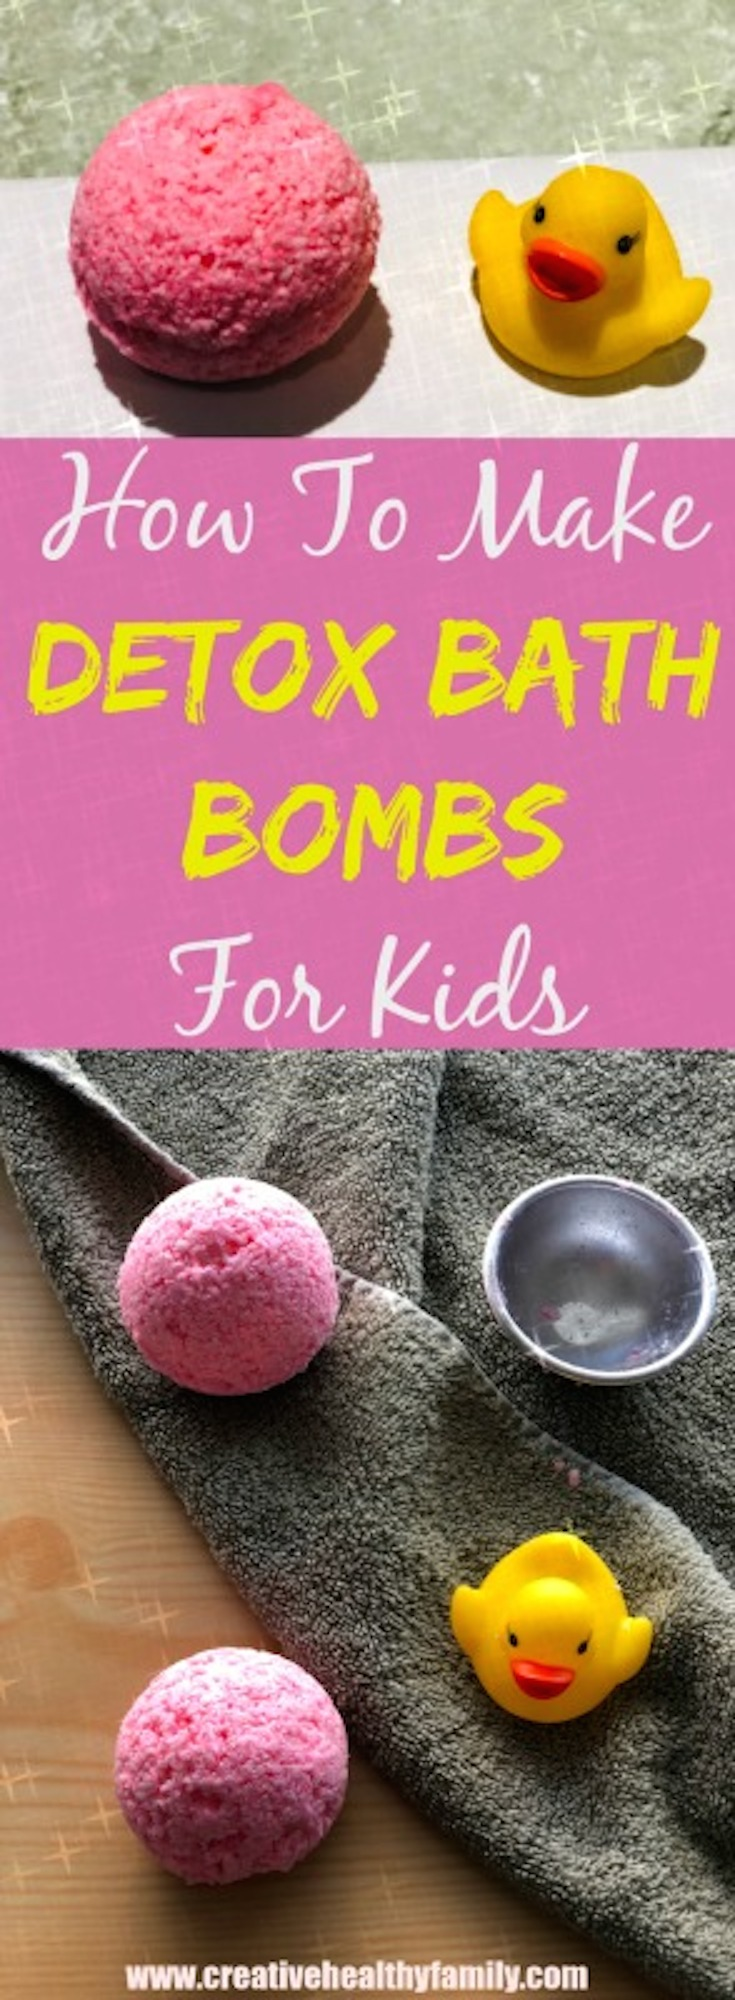 Detox bath bombs for kids